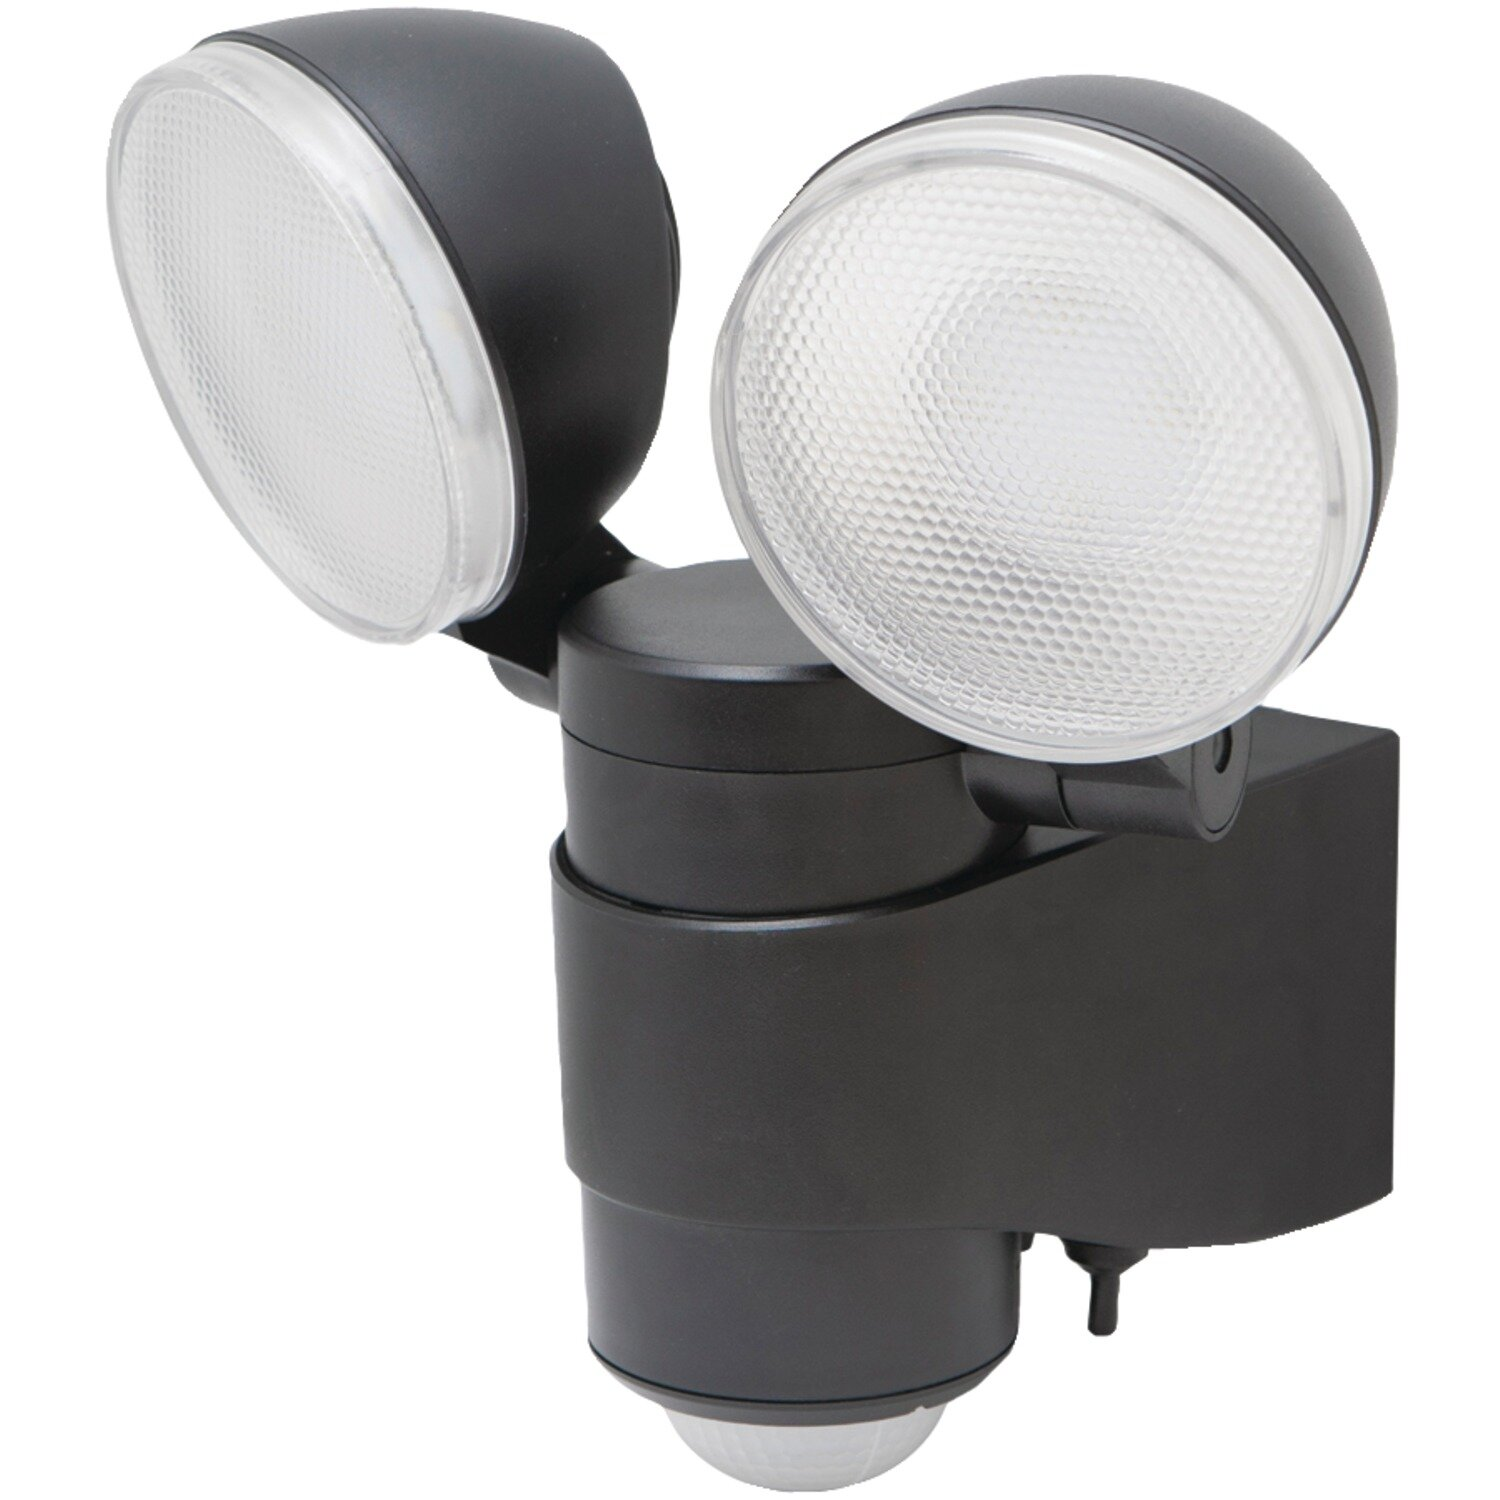 Dual Head Battery Operated Outdoor Security Spotlight With Motion Sensor